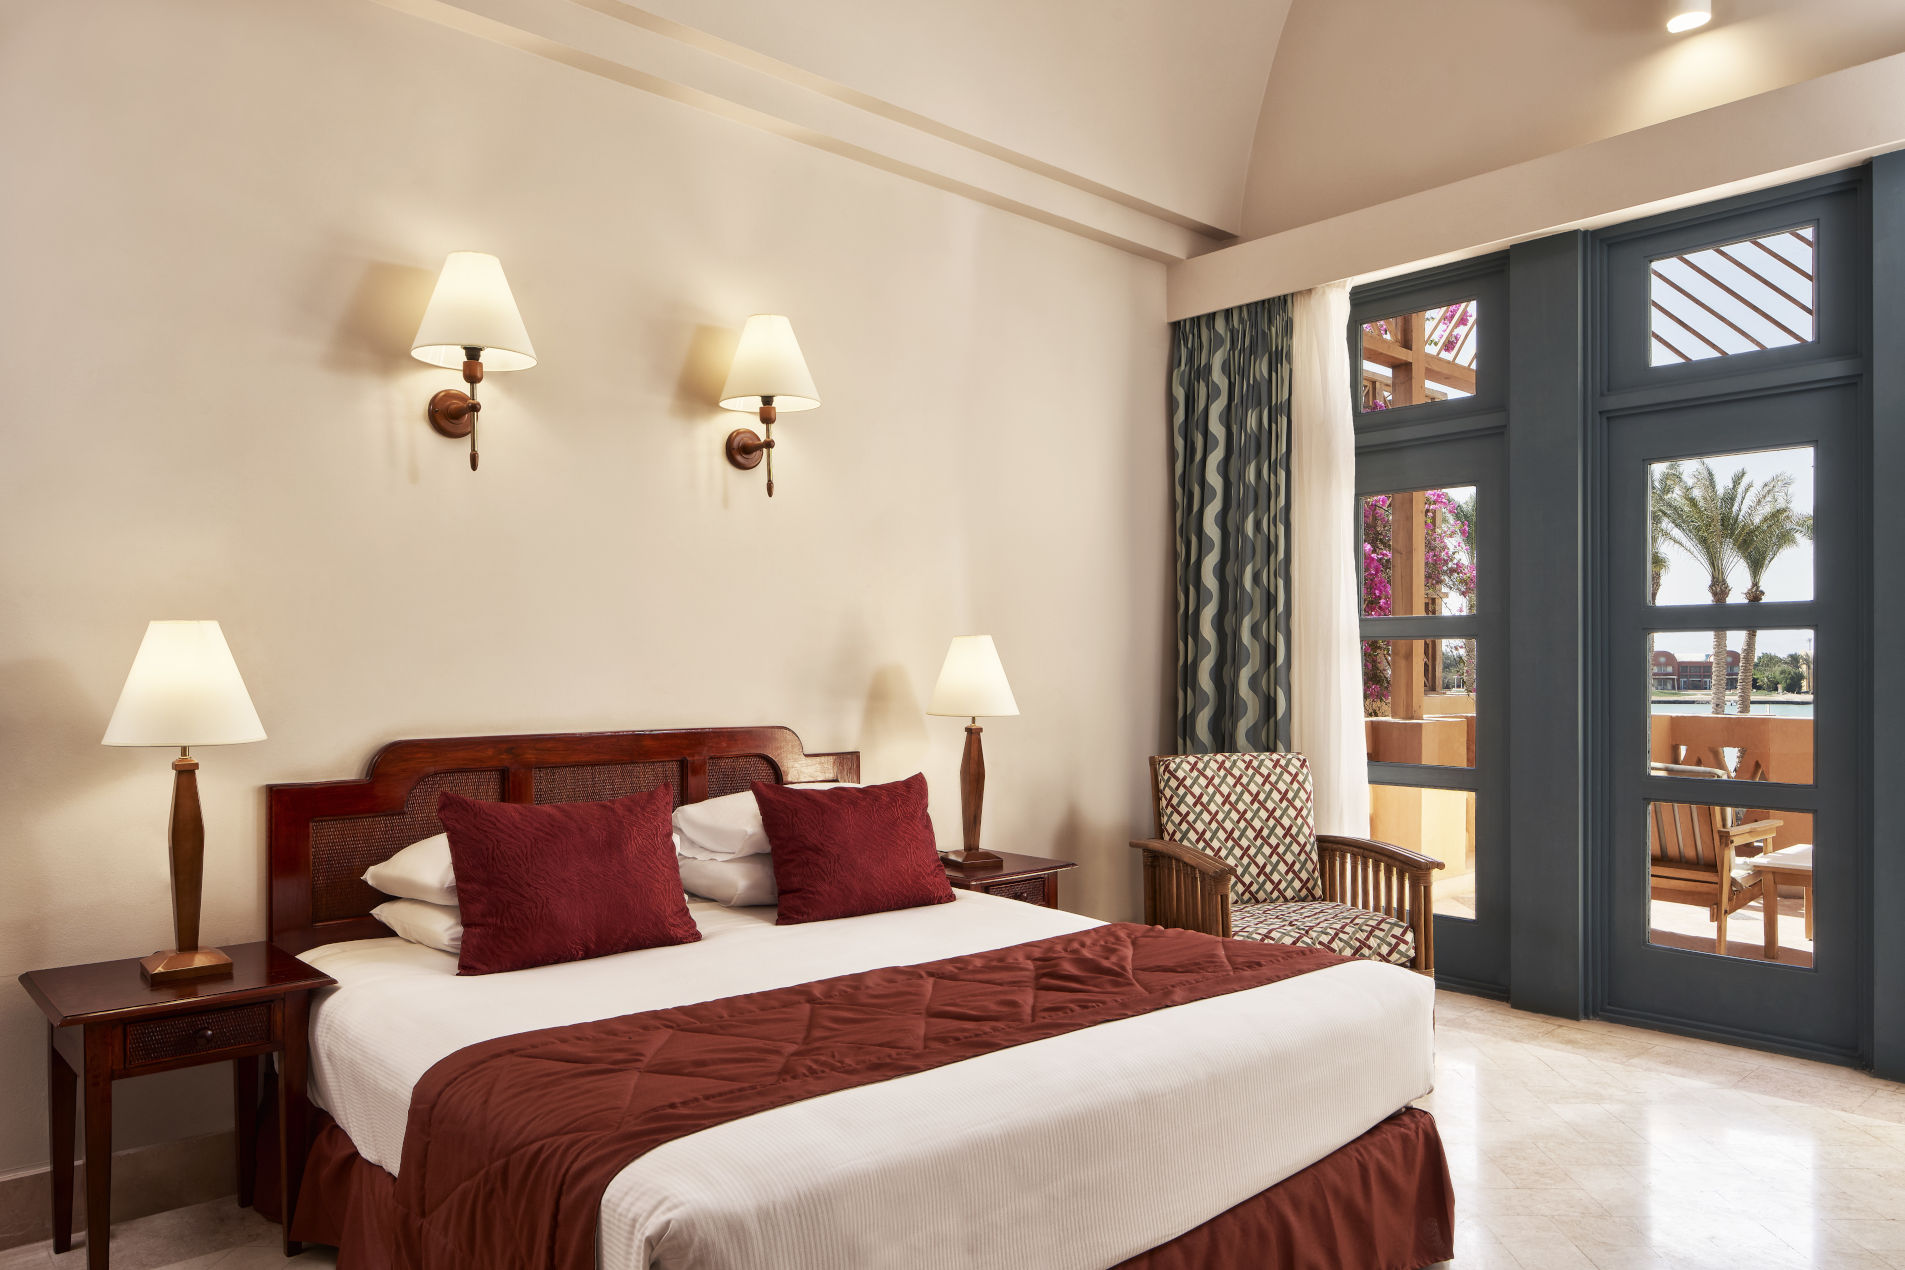 Bedroom of Steigenberger Golf Resort El Gouna Apartment with a balcony on the picturesque lagoon